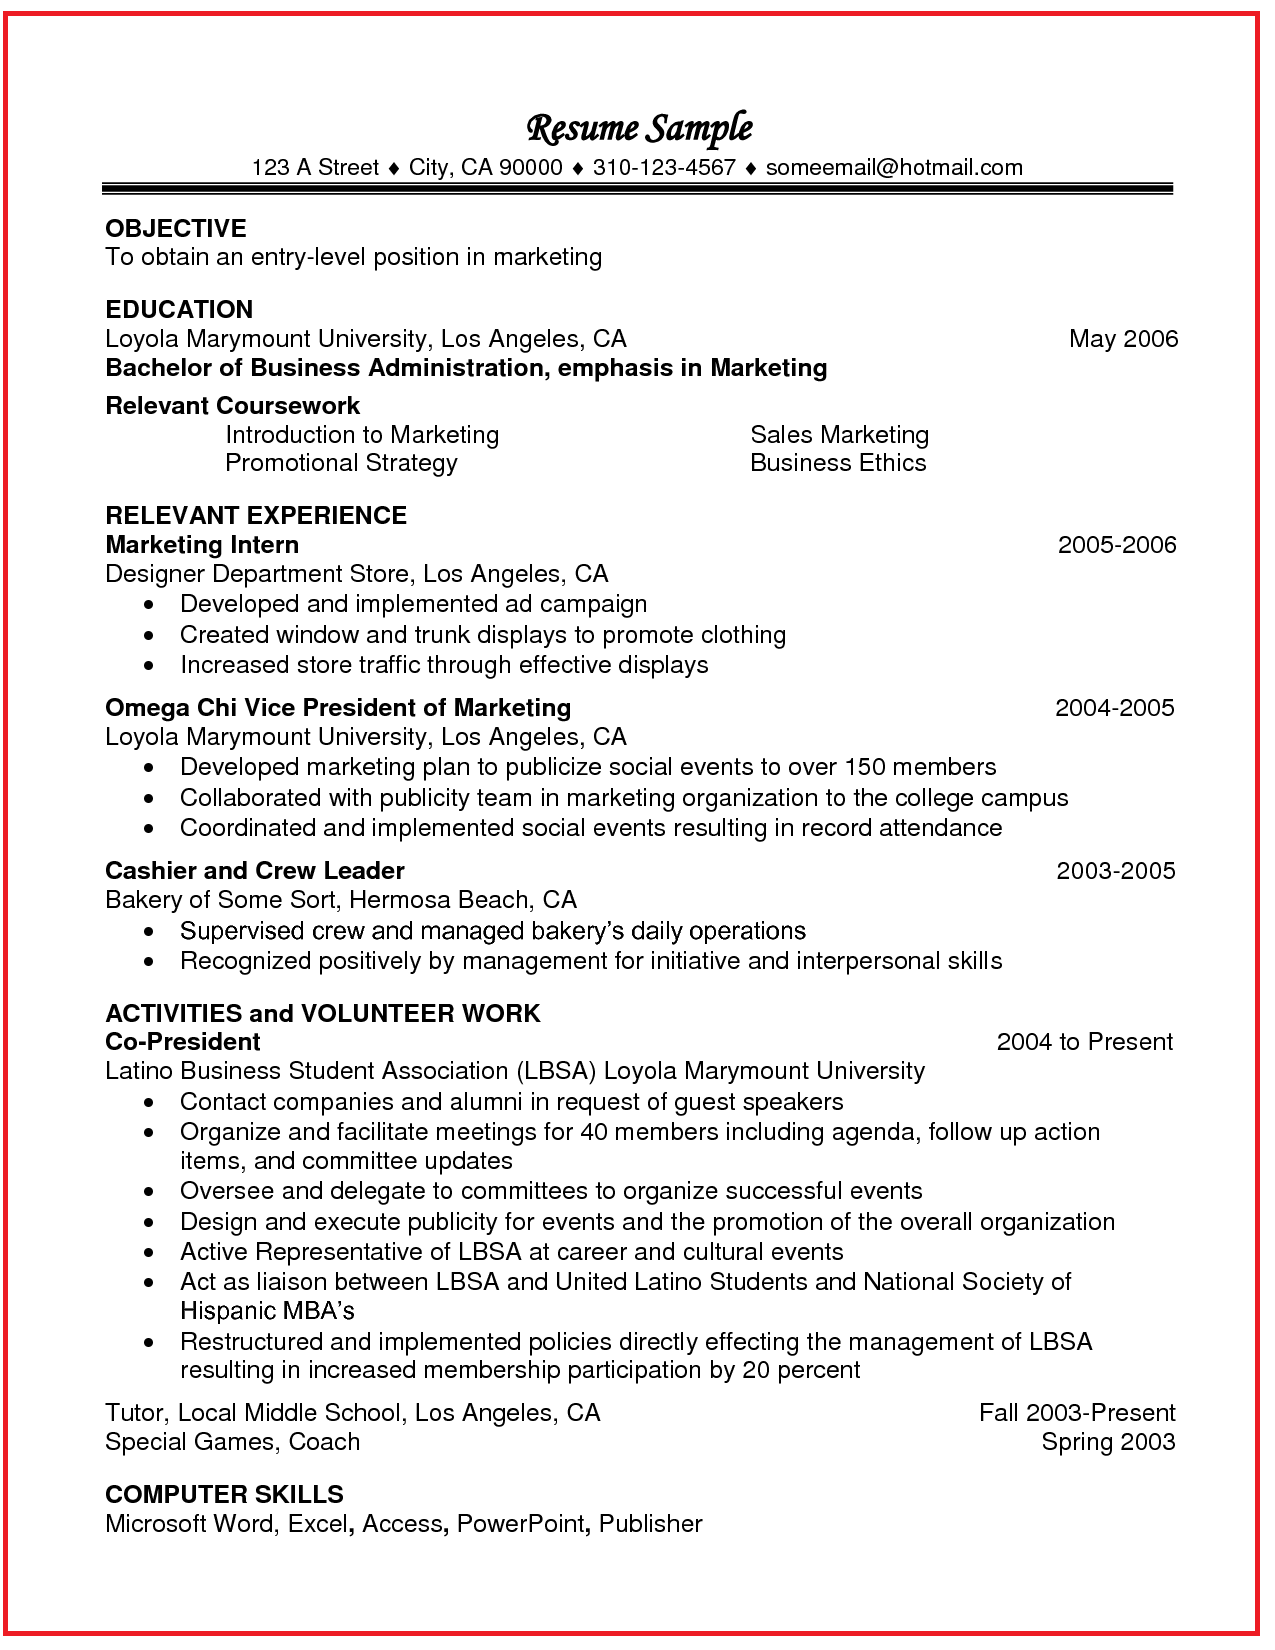 Amazing Resume Examples Relevant Coursework In Resume Example  Httpwwwjobresume